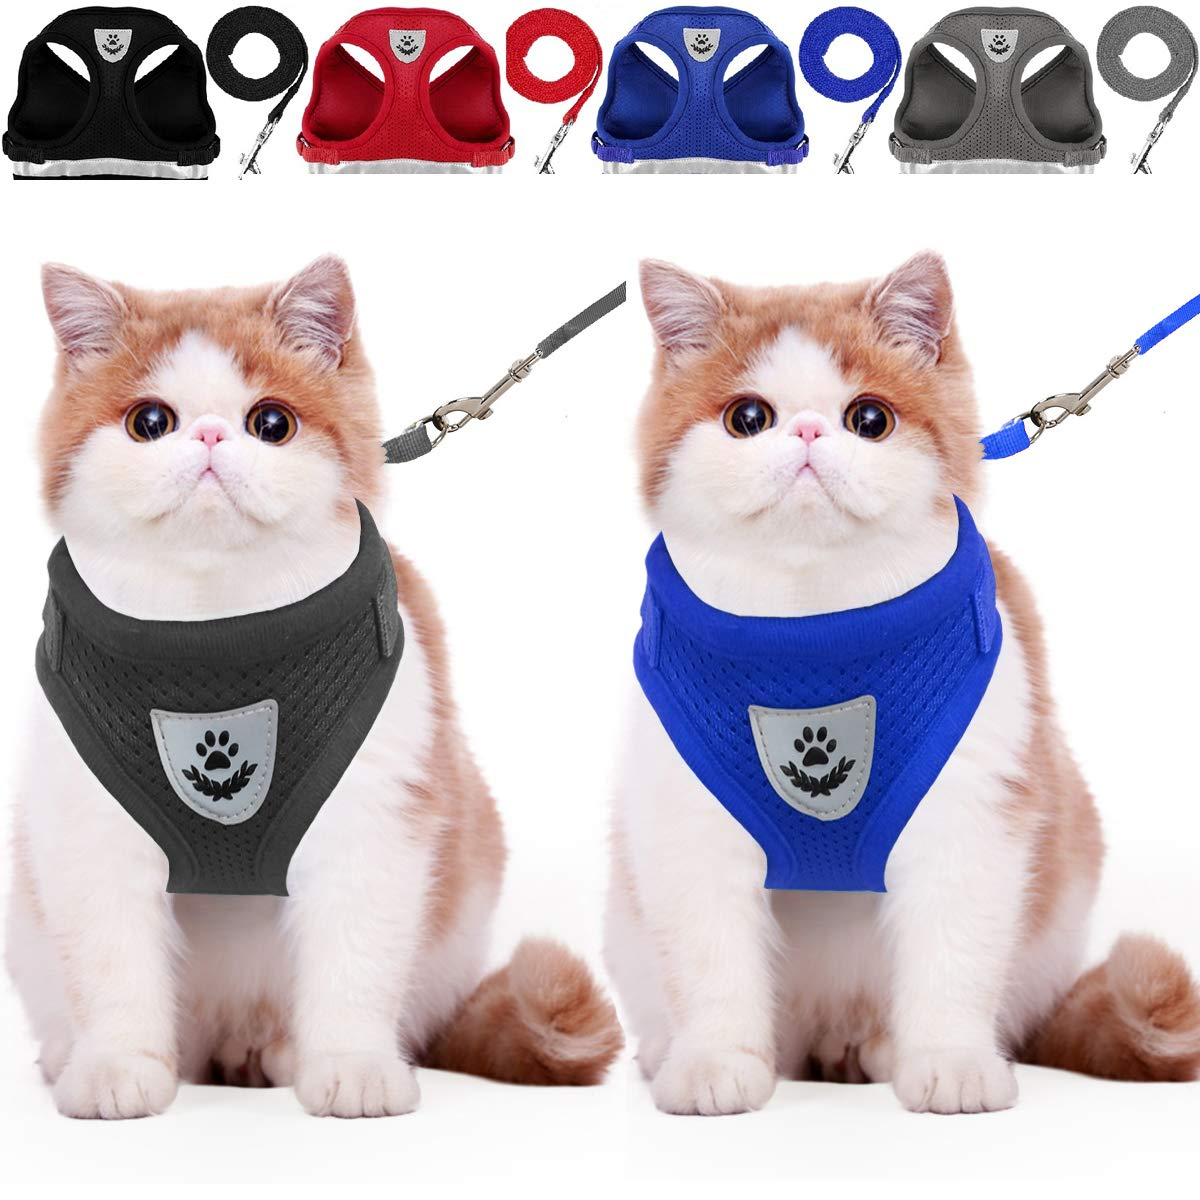 Cat Harness and Leash Dog Harness Walking Adjustable Soft Mesh Pet Vest with Lead Re-adjustable Pet Leash with Reflective Material and Metal Button Suit for Most Sizes of Pet (Black-Blue, M)